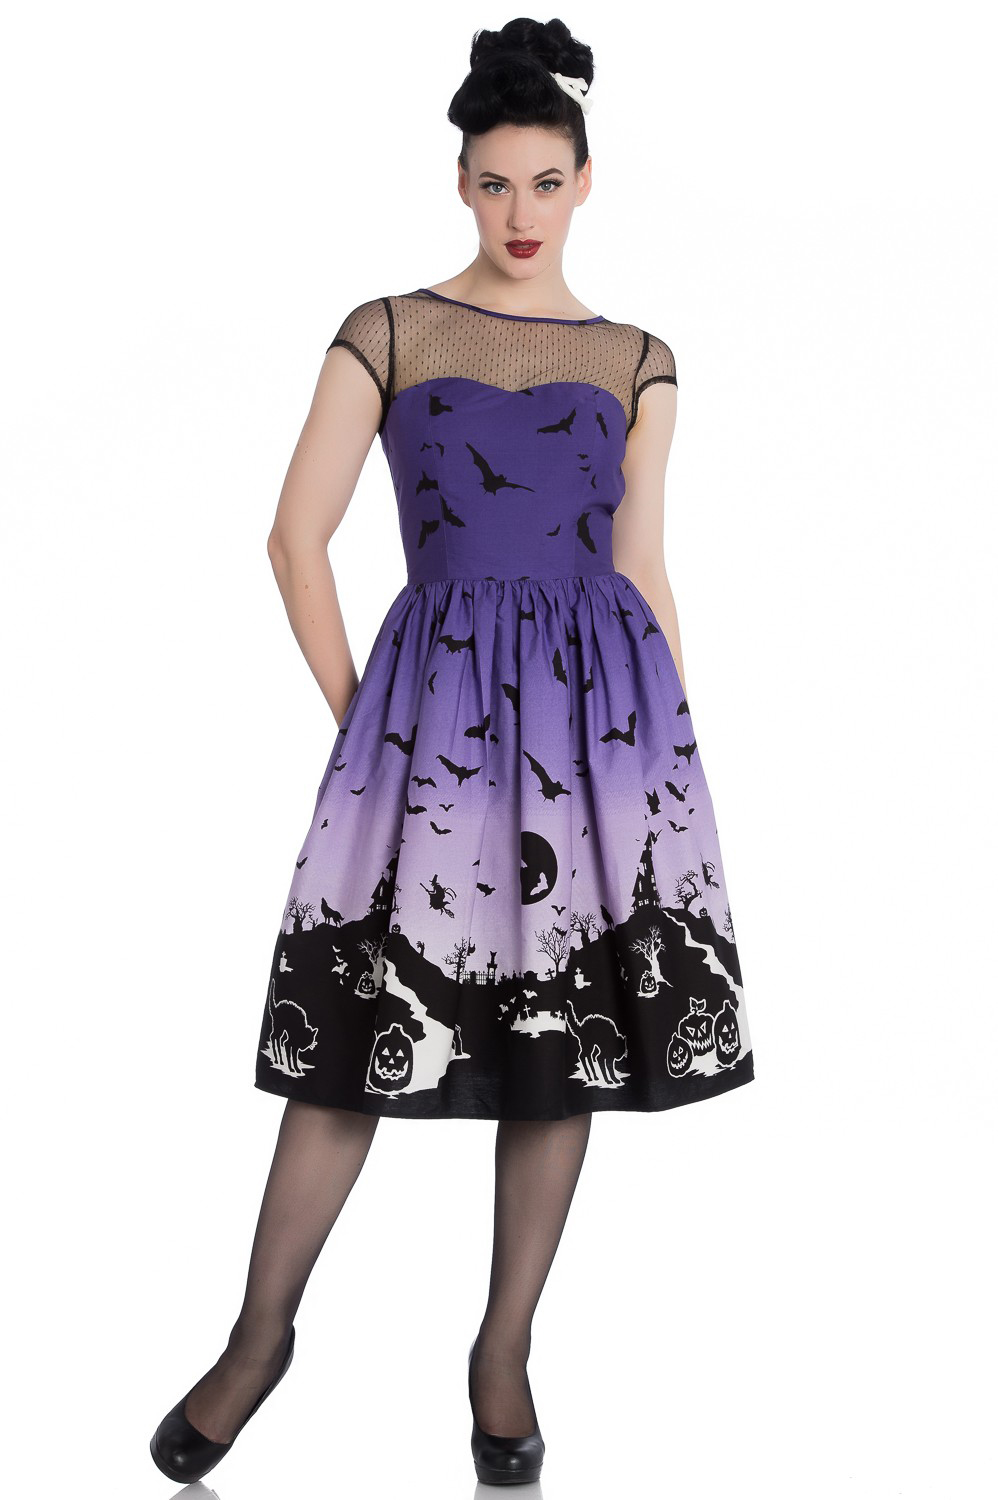 Haunt 50's Halloween Dress by Hell Bunny - SALE sz XS & M only